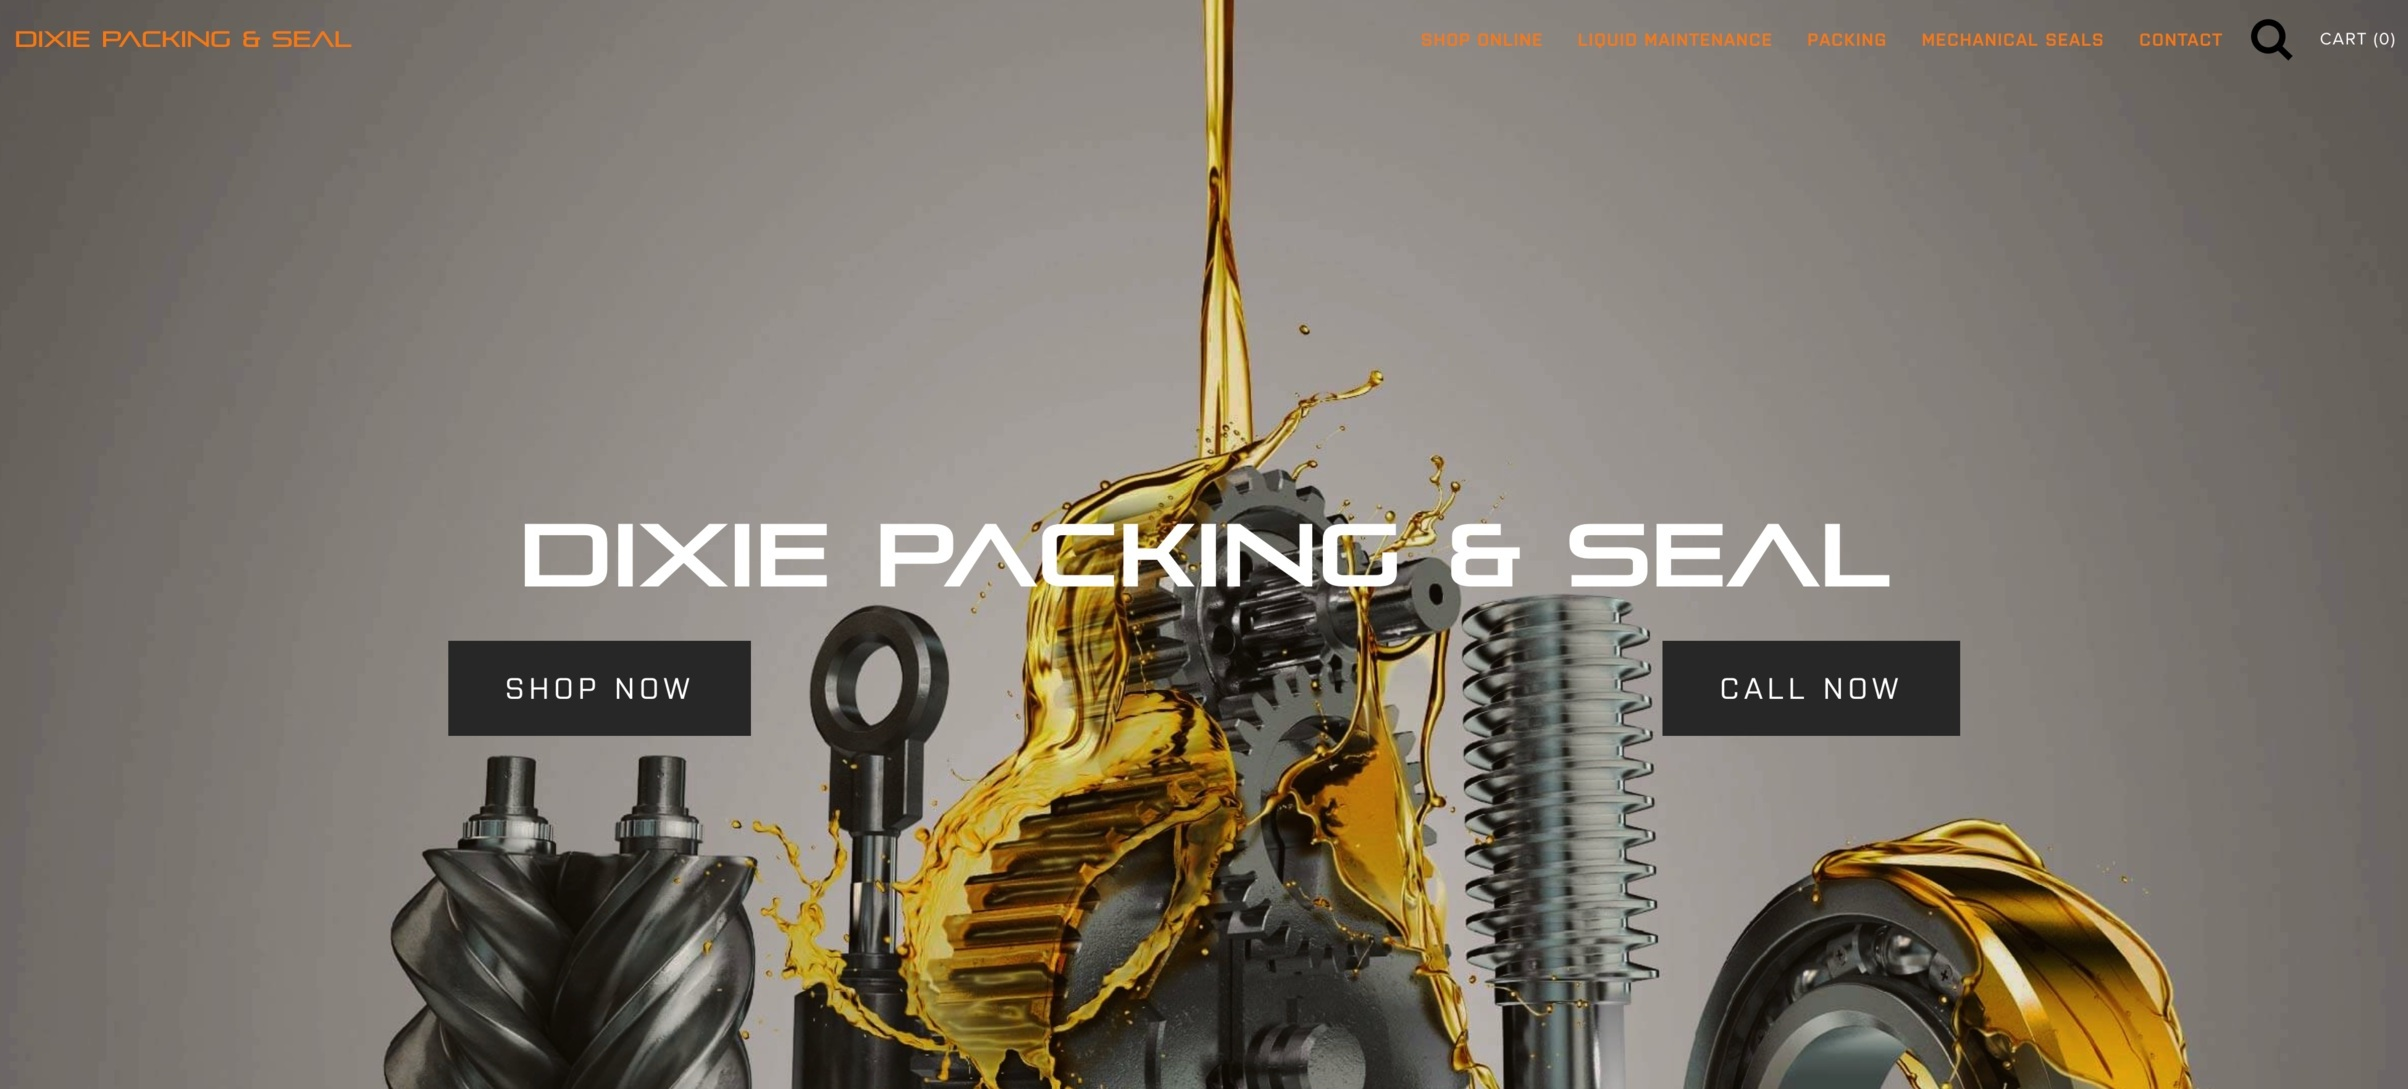 Dixie Packing & Seal